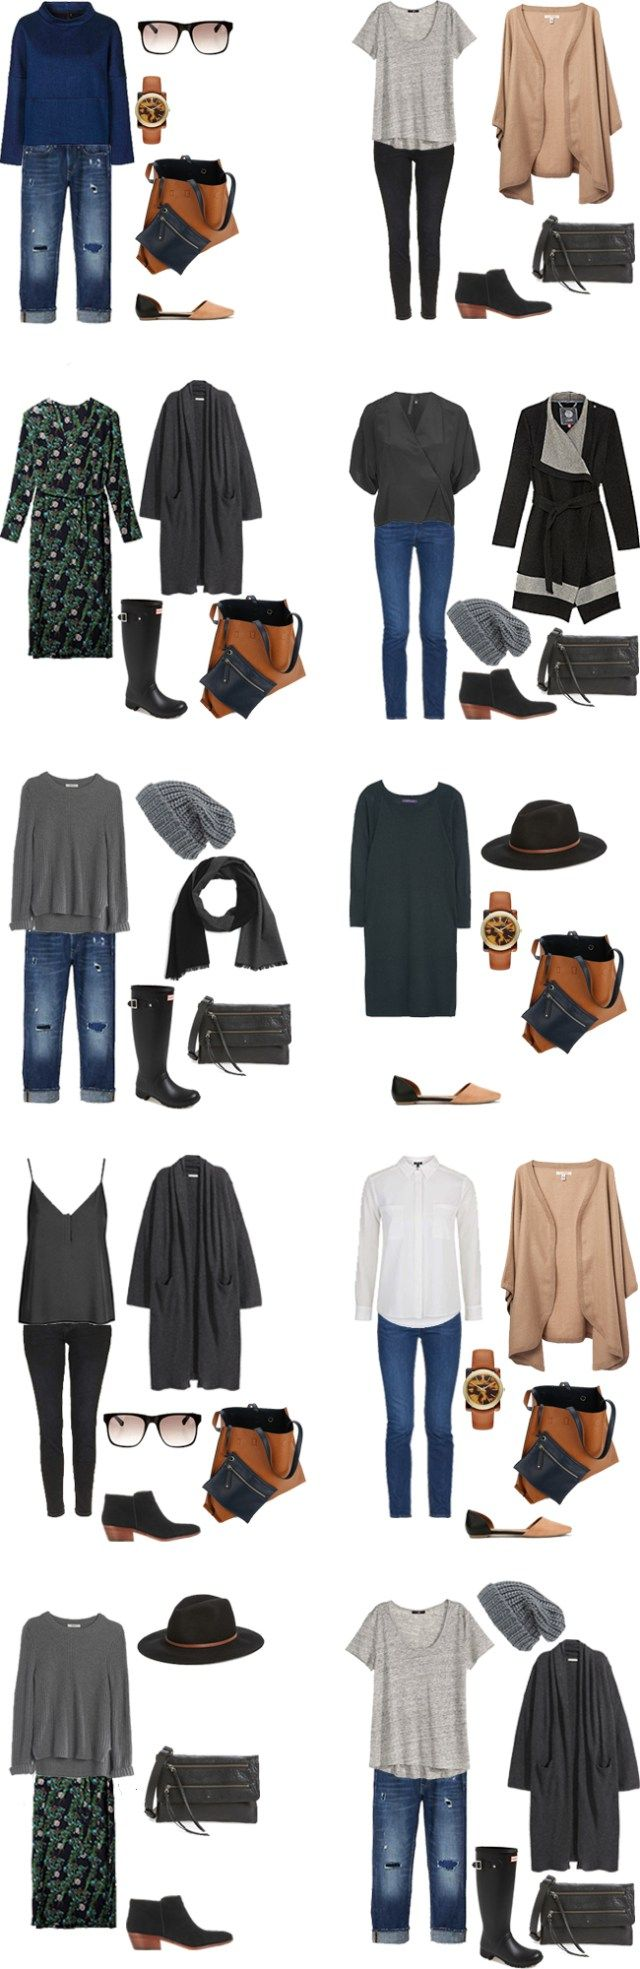 livelovesara - My life in a blog by Sara Watson. Packing list: Italy and Switzerland- Outfits Options. Winter 2016